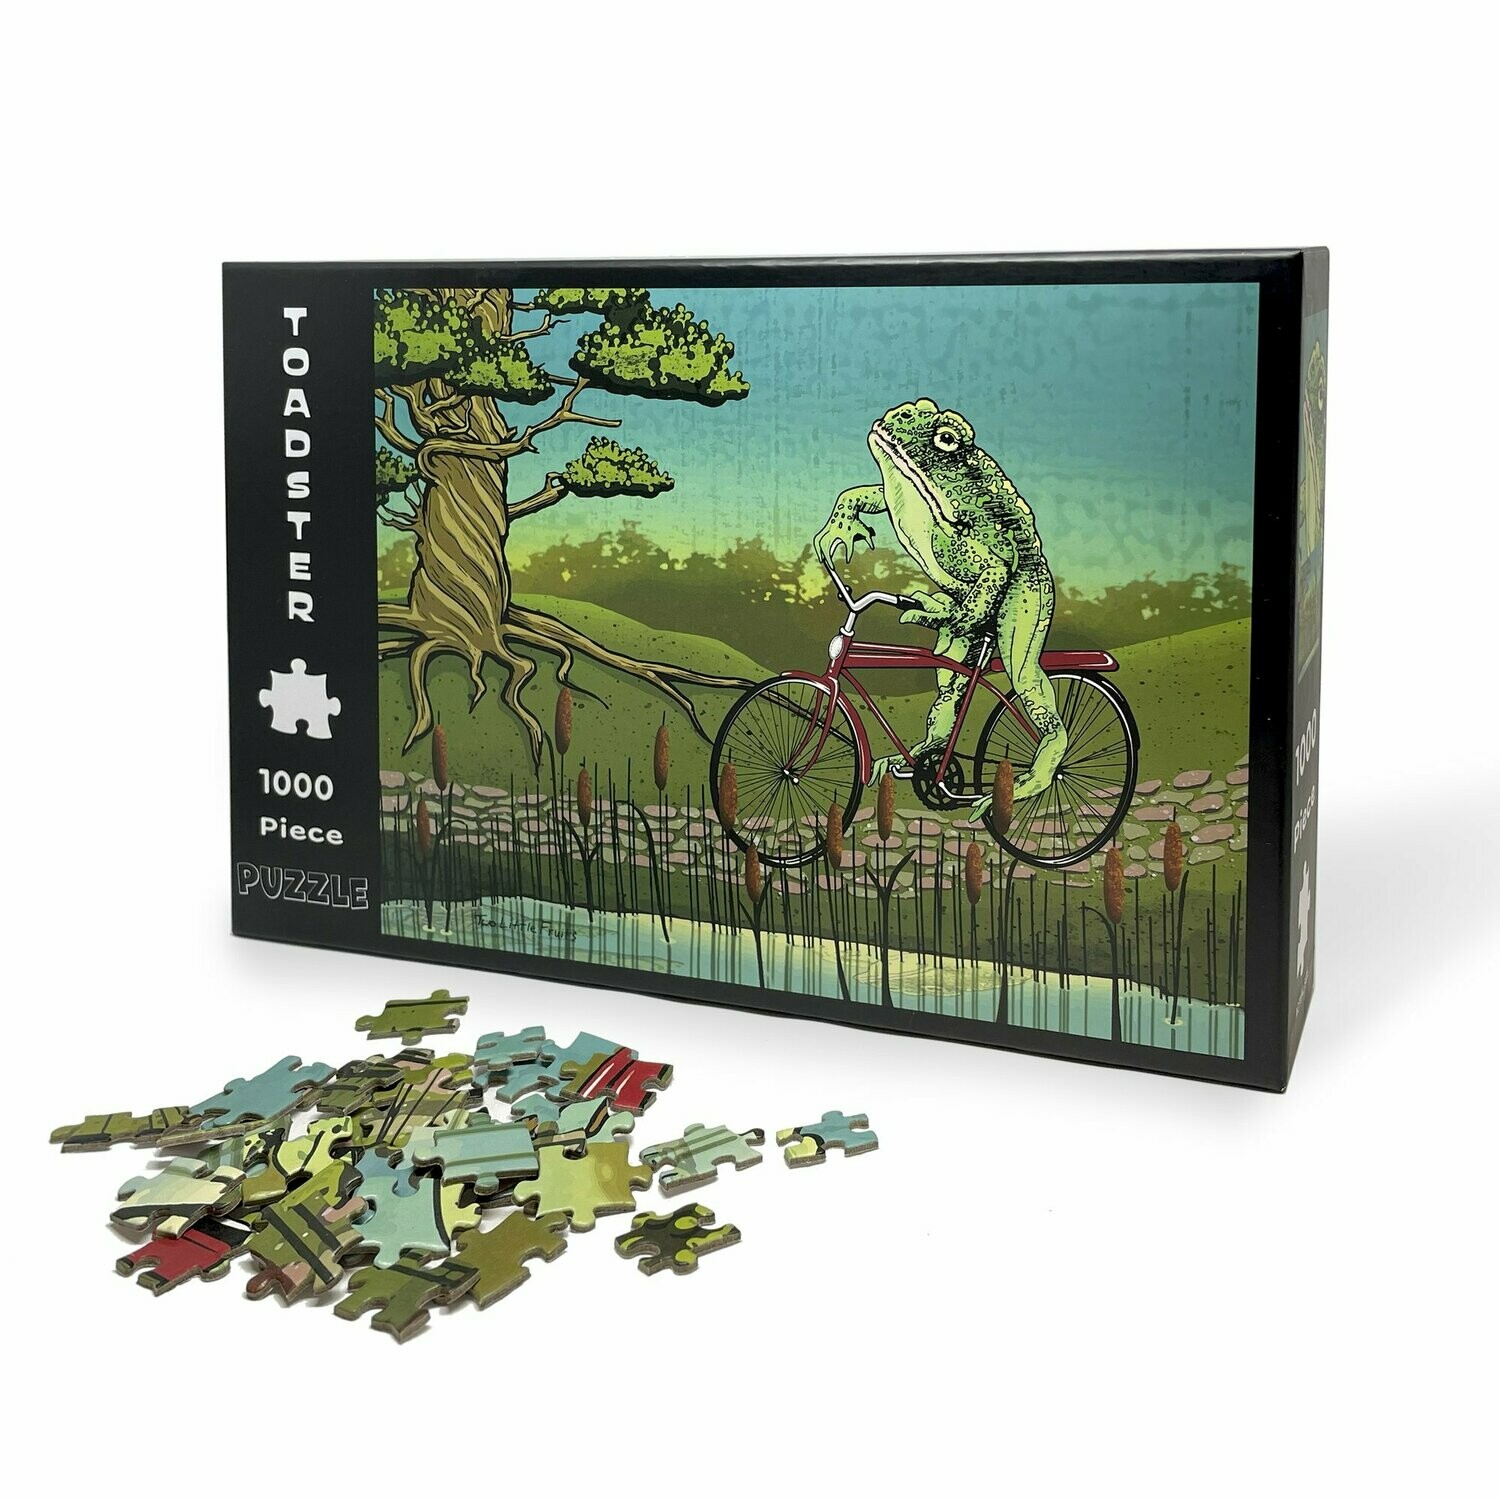 Frog on a Bike Puzzle